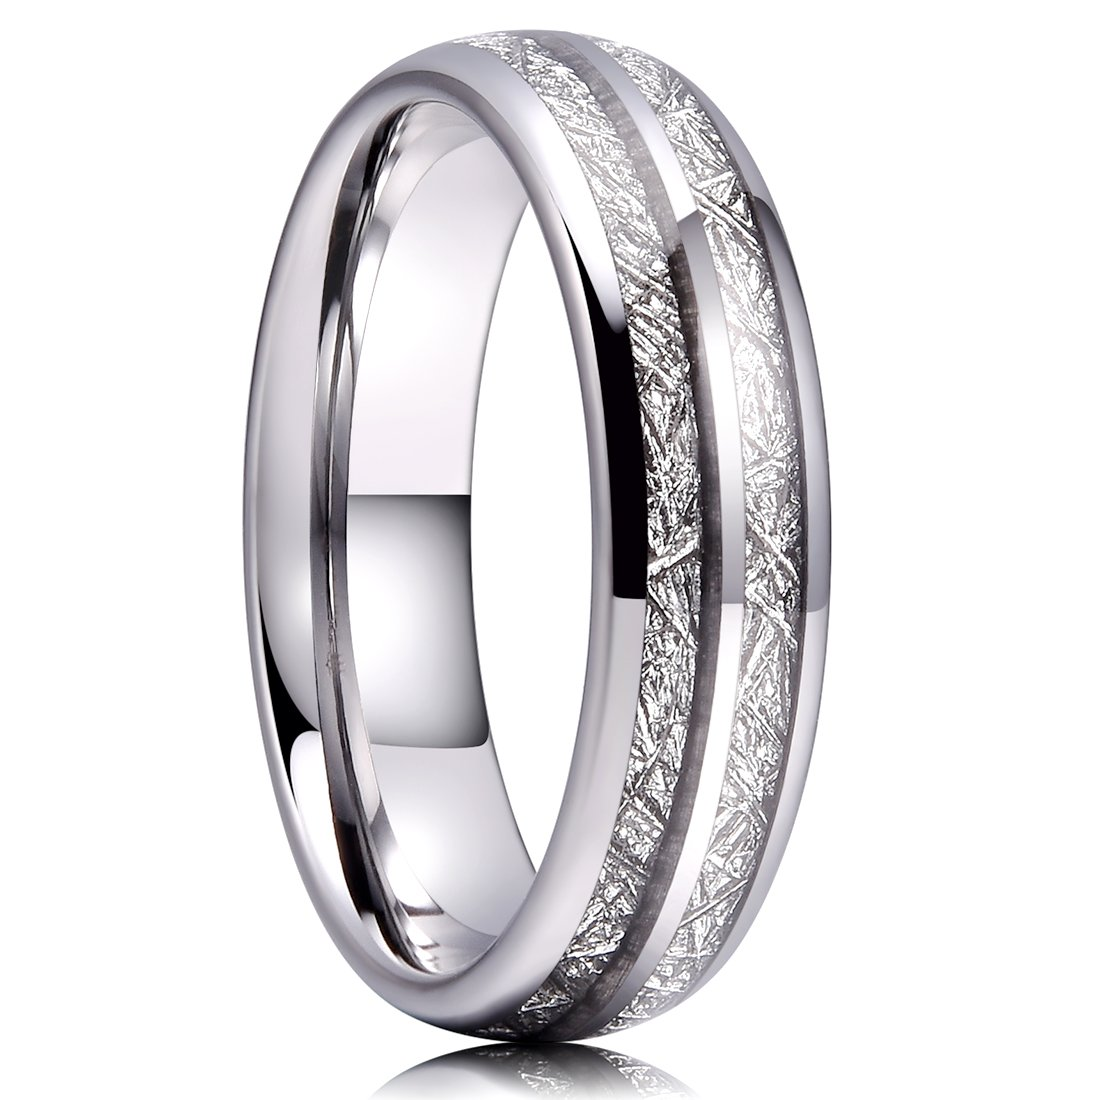 Three Keys Jewelry 6mm Imitated Meteorite Tungsten Wedding Ring Domed Viking Wedding Band Engagement Ring CR001-VARIATION